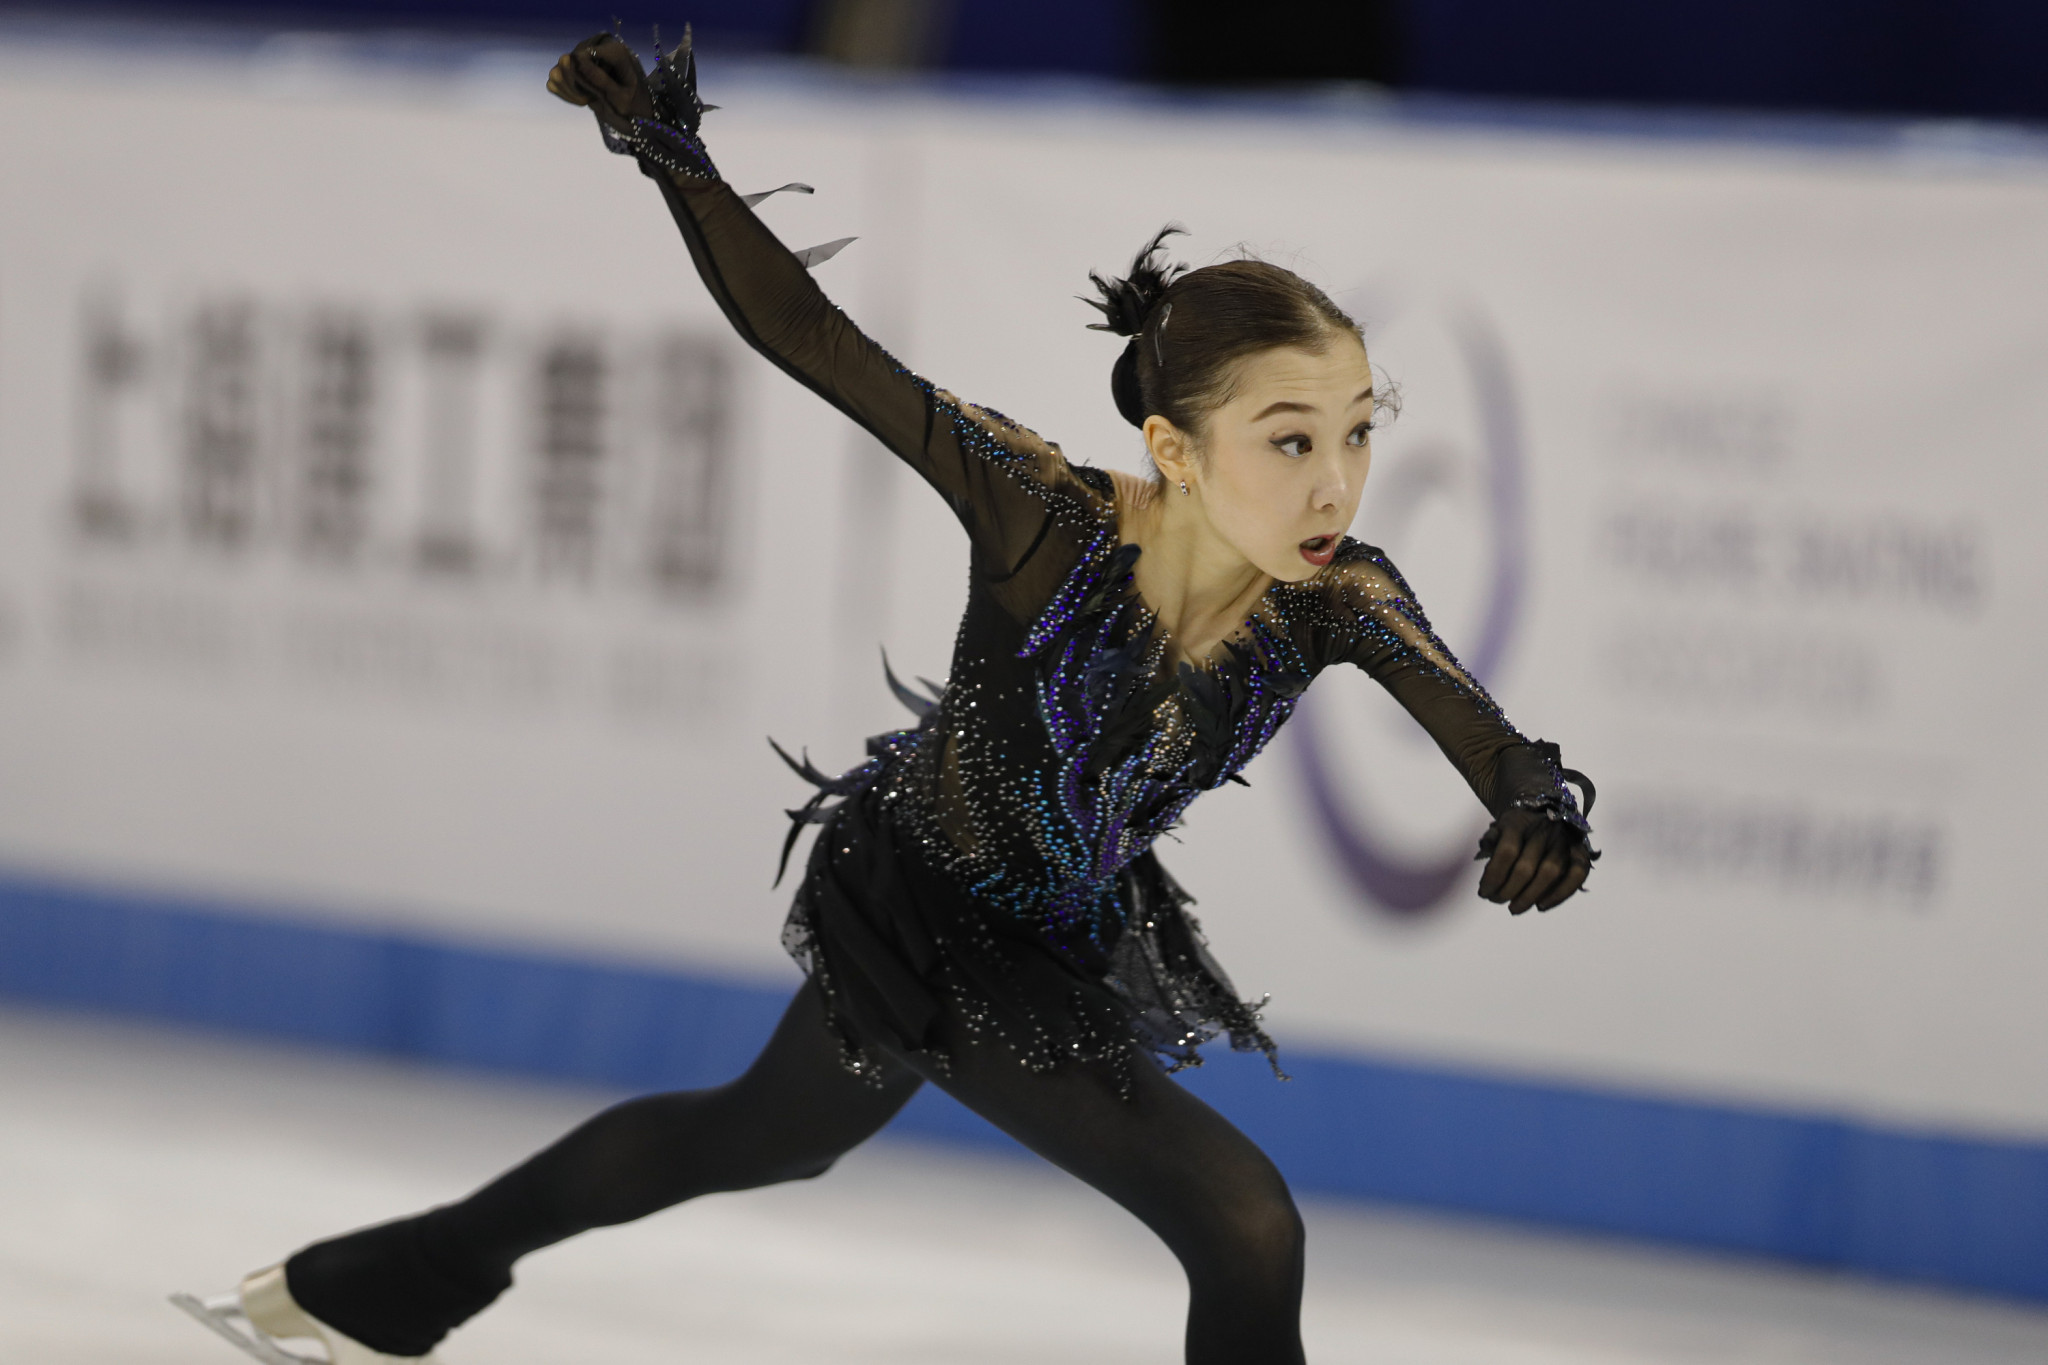 Kazakhstan's Elizabet Tursynbaeva has retired from figure skating due to a back problem ©Getty Images